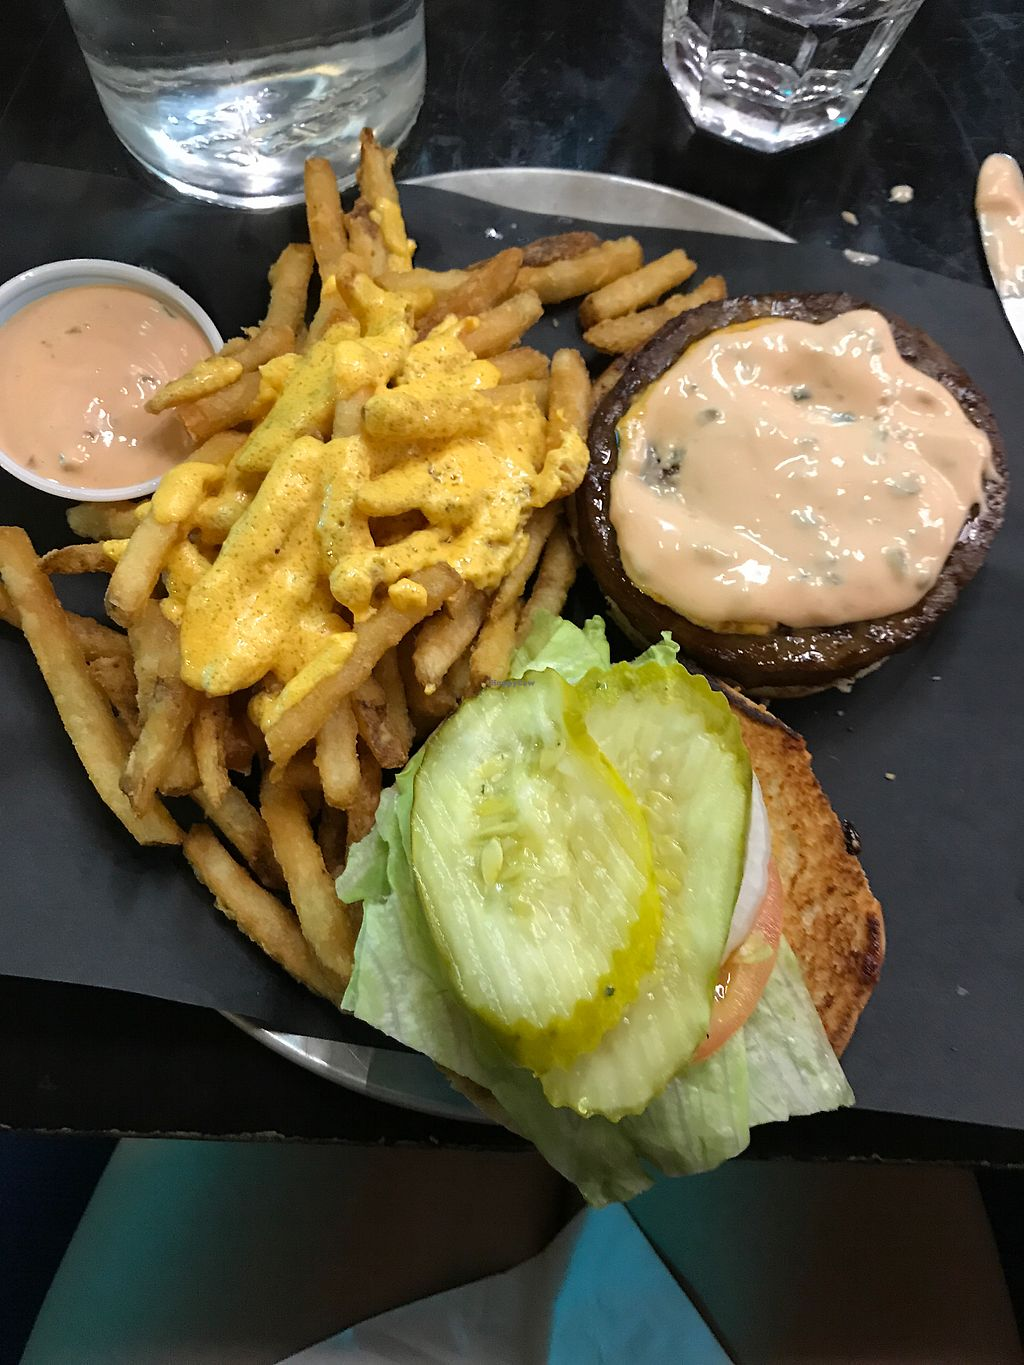 "Photo of Doomie's  by <a href=""/members/profile/WandaBeydoun"">WandaBeydoun</a> <br/>classic burger with cheese fries. Tasted just like meat ?  <br/> August 18, 2017  - <a href='/contact/abuse/image/73105/293991'>Report</a>"